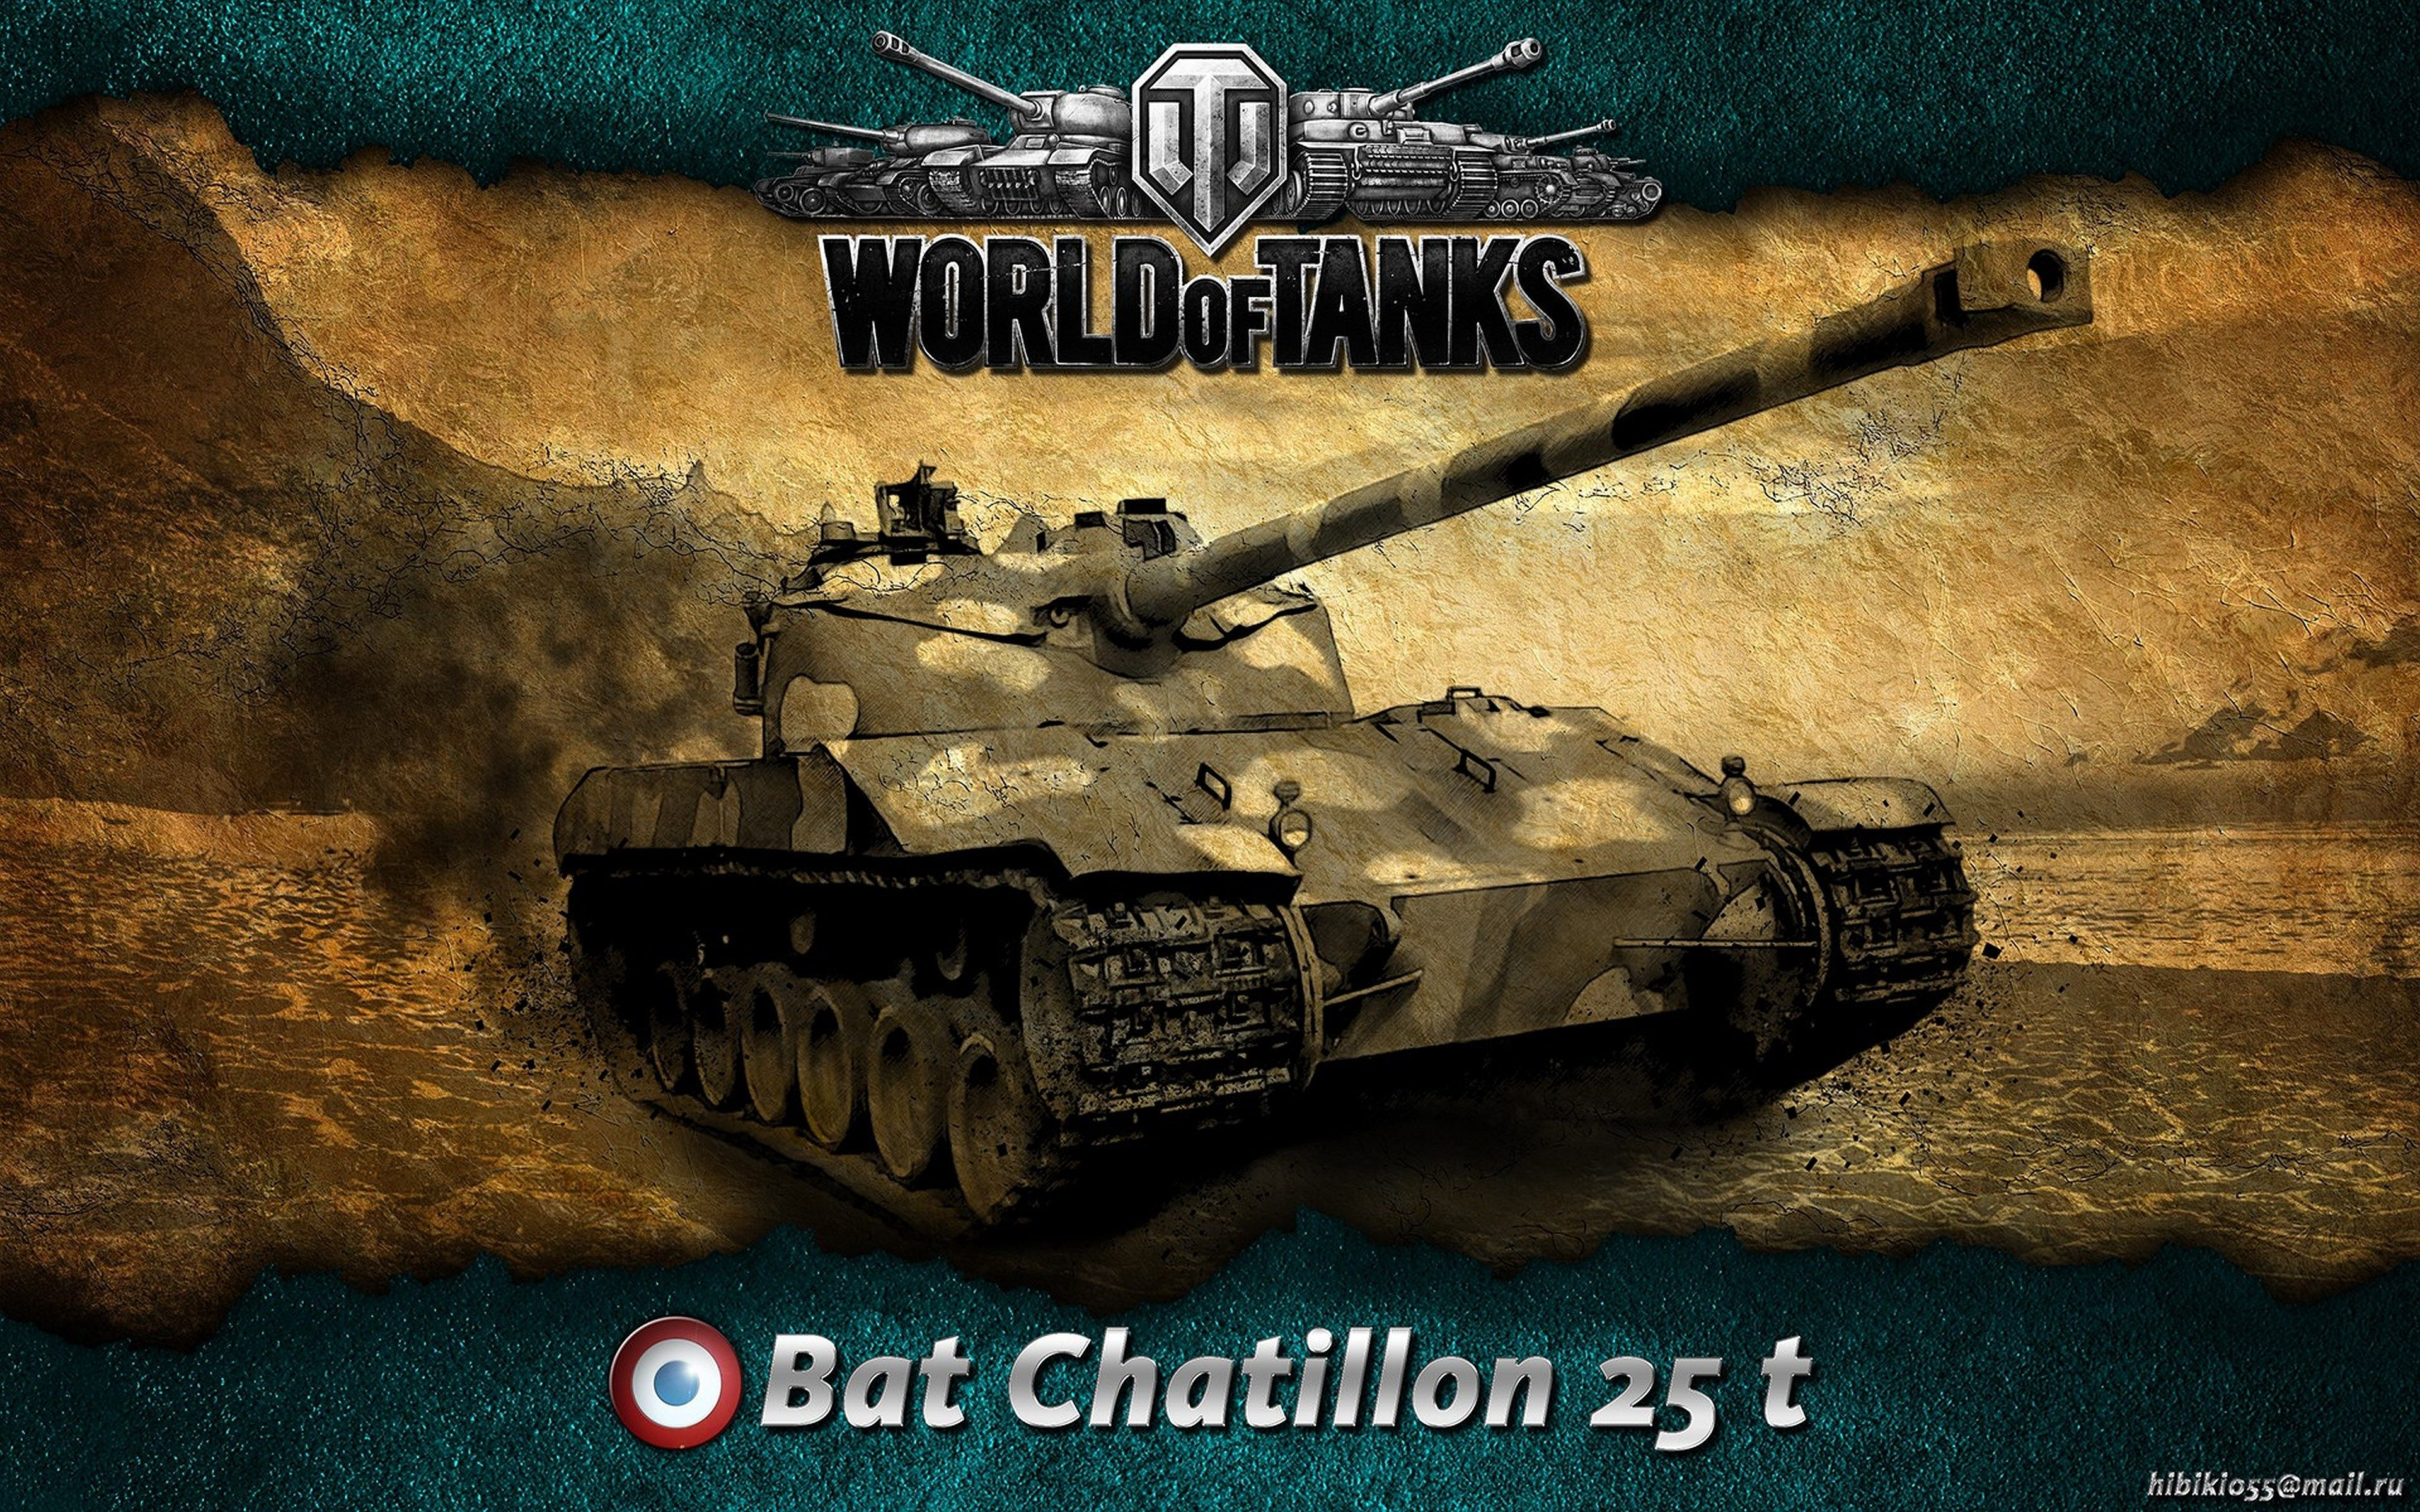 2017-03-25 - Widescreen world of tanks pic - #1702070